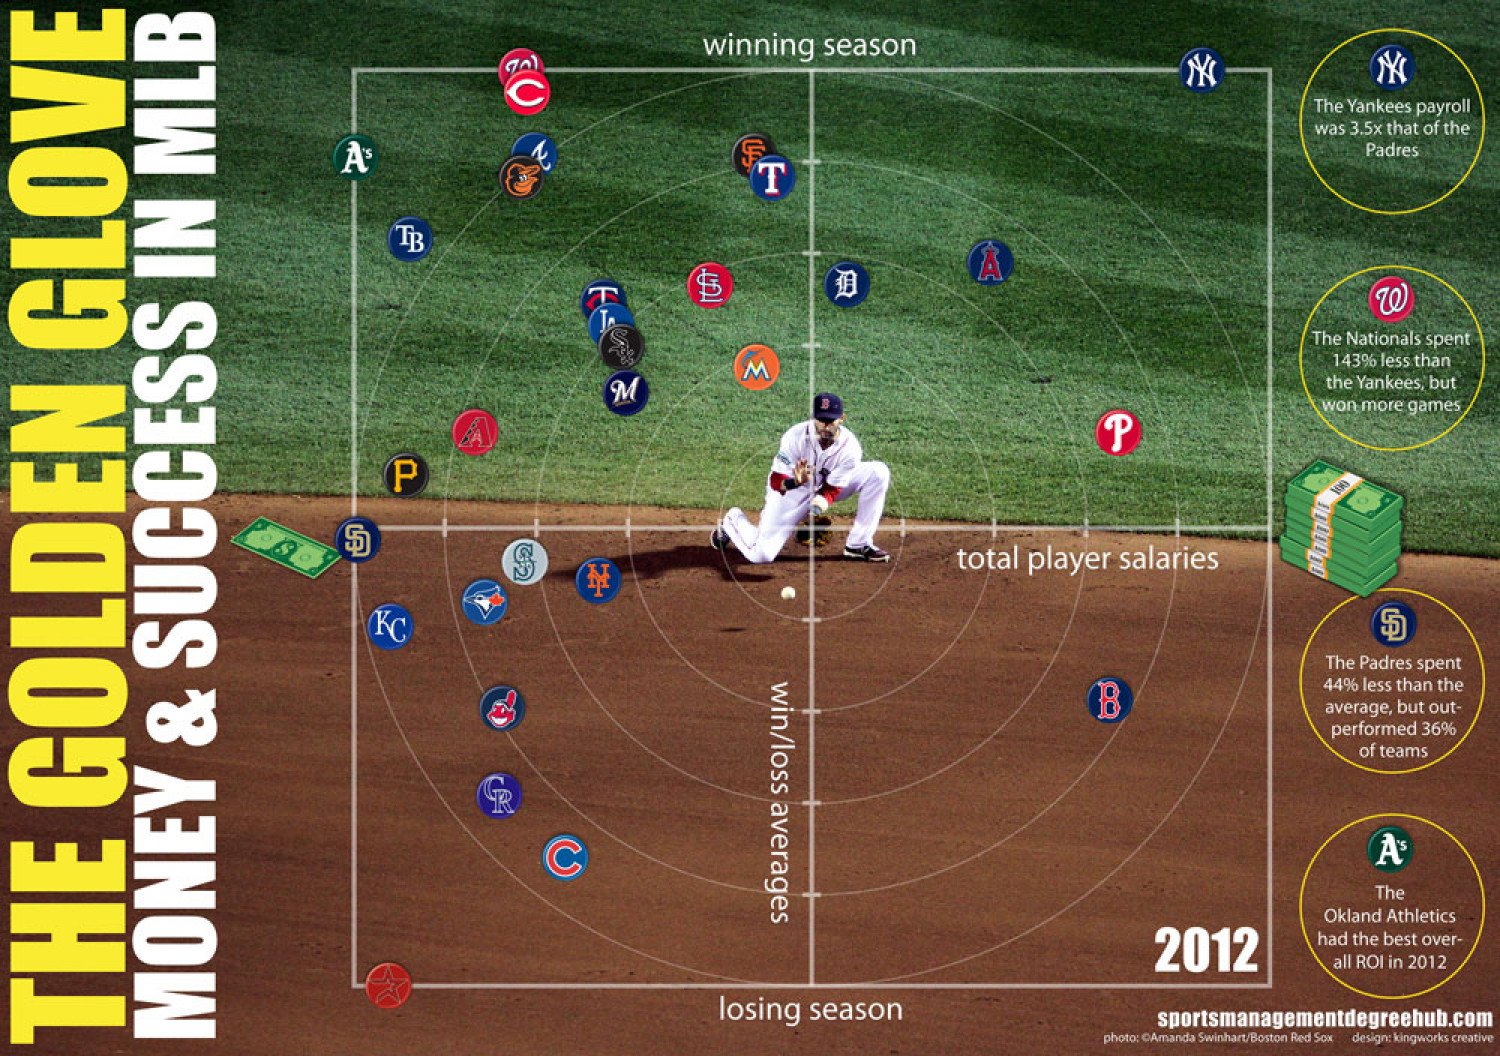 The Golden Glove Infographic